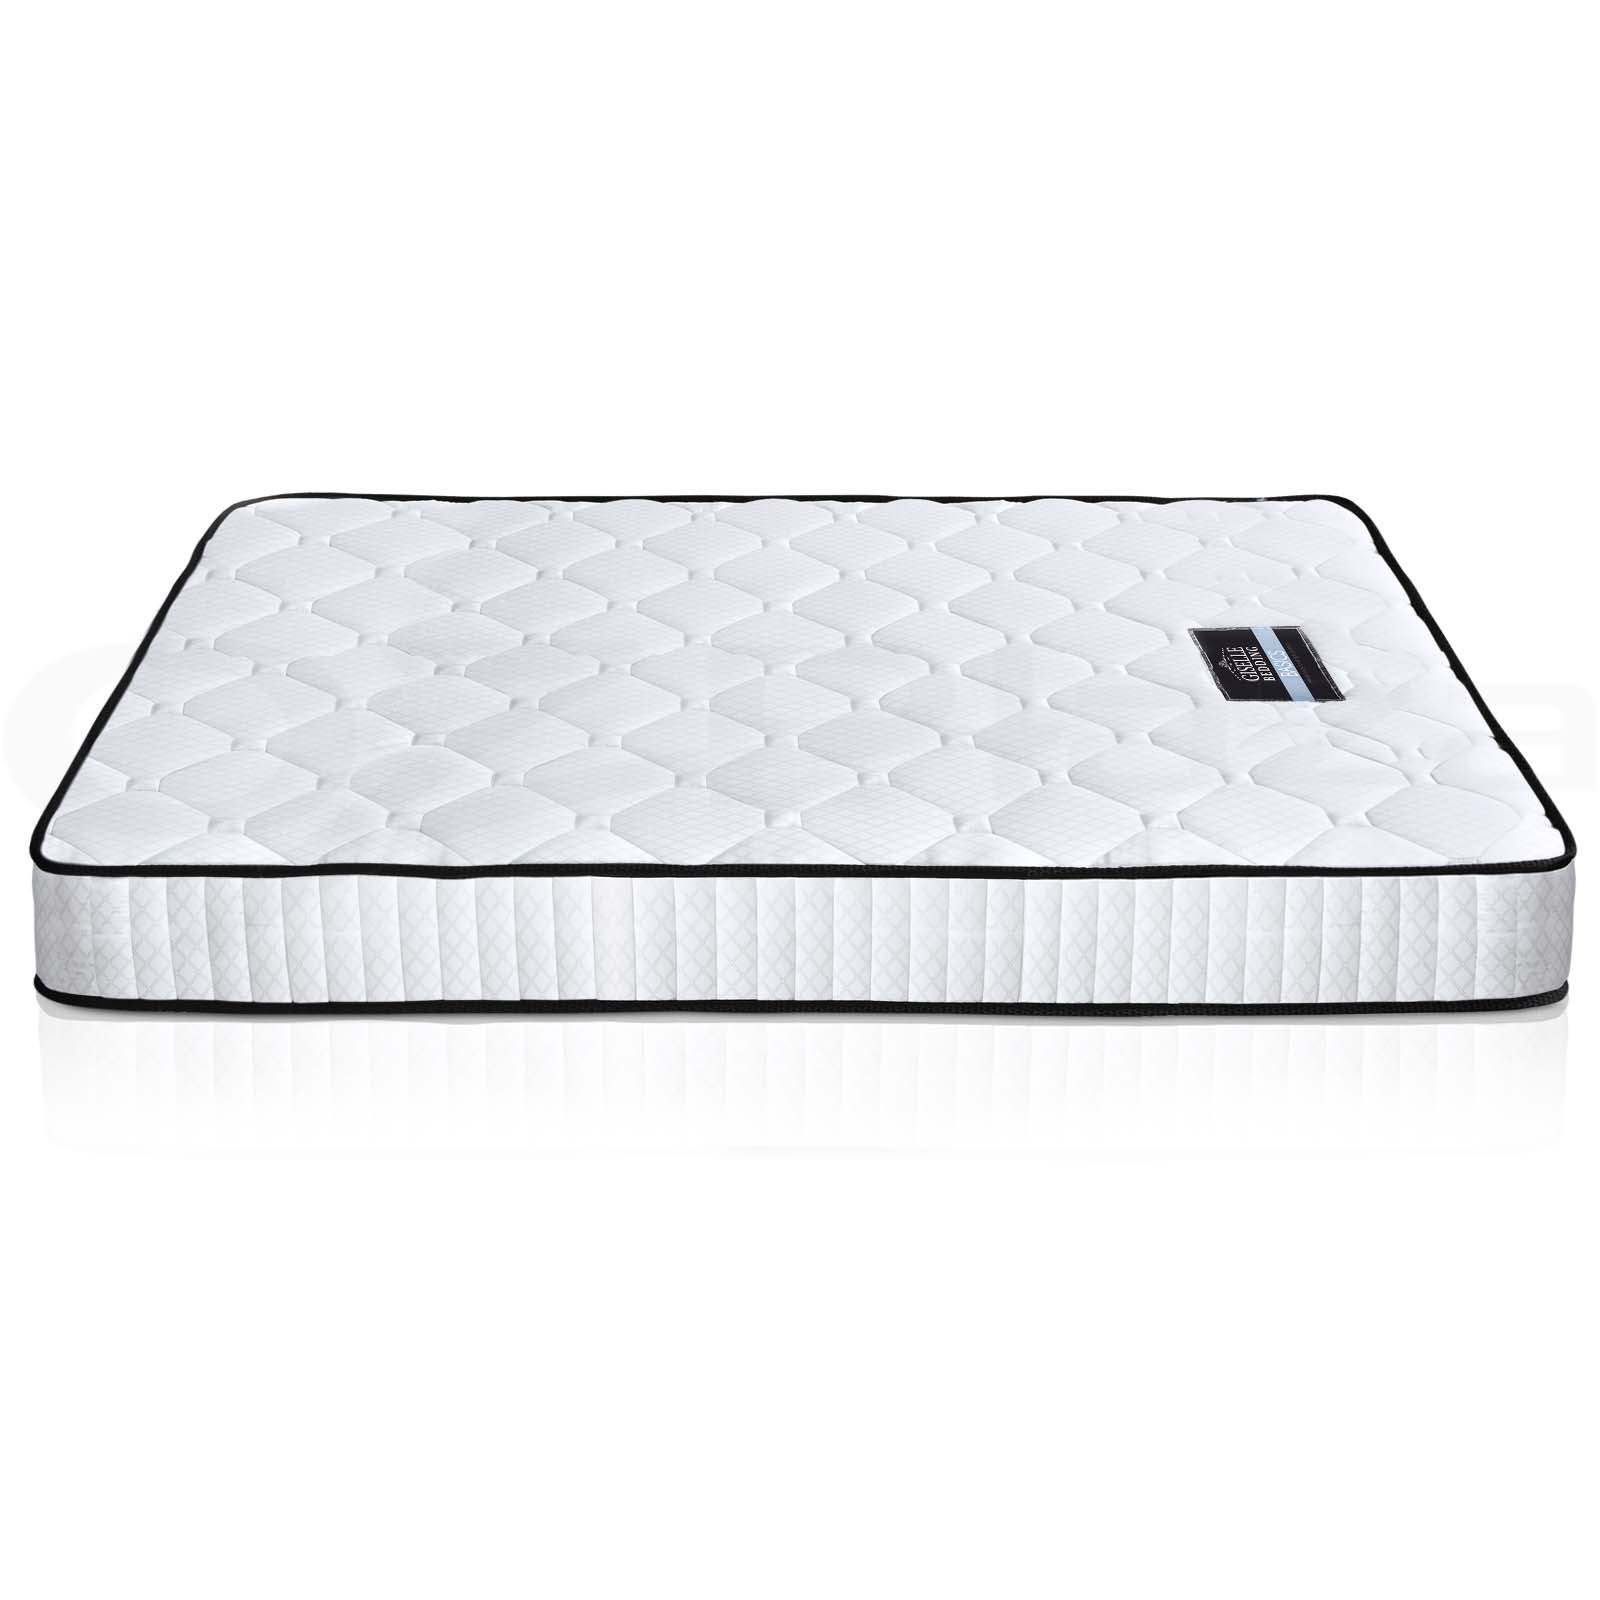 Single Mattress Length Single Mattress Size Australia